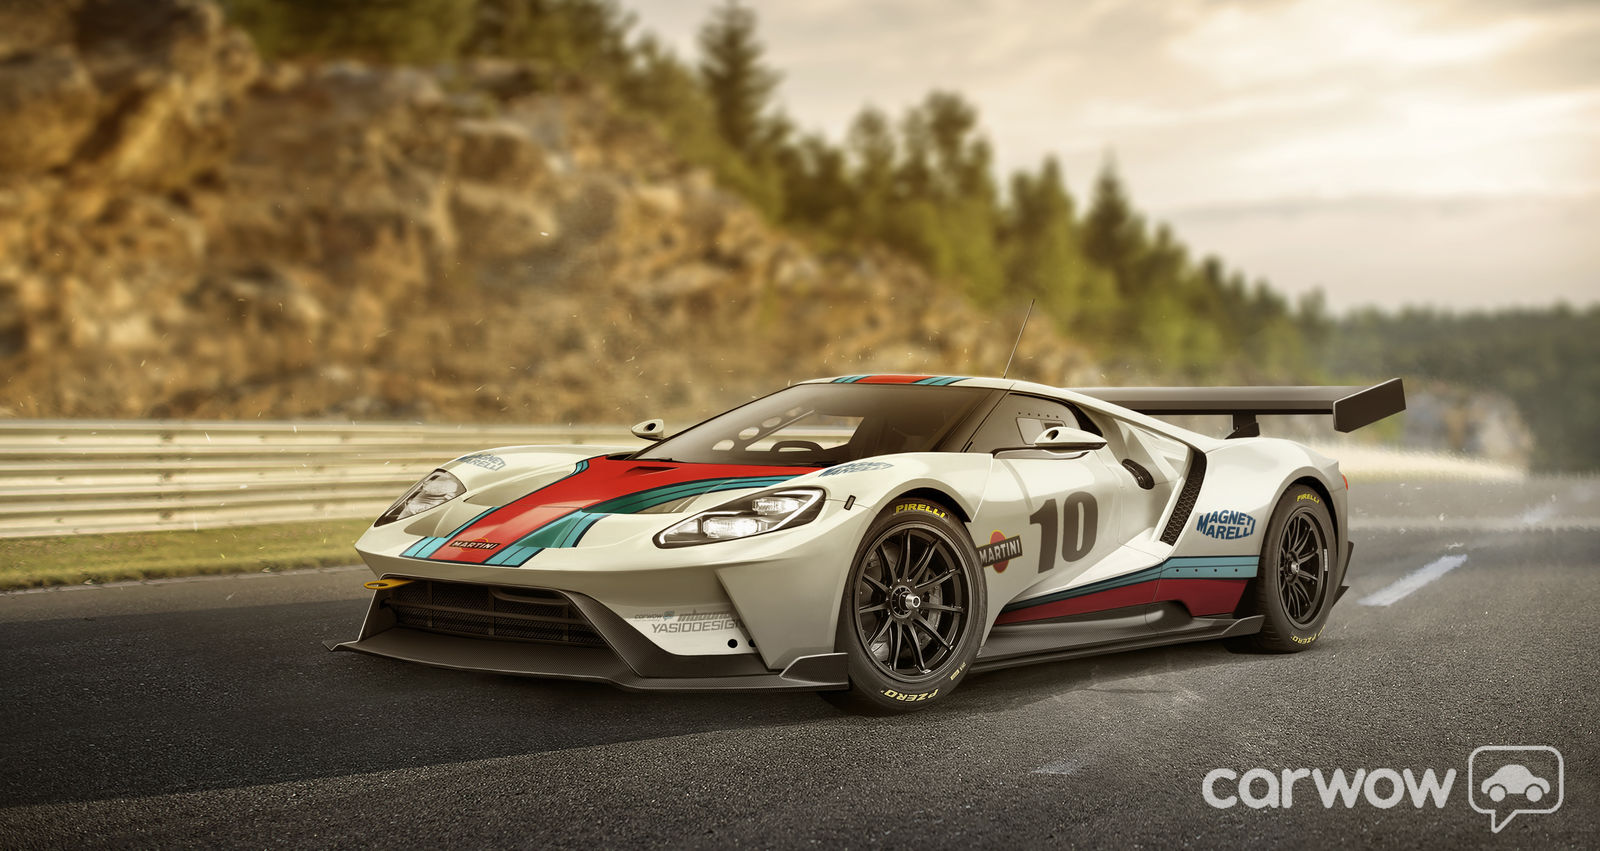 2016 Ford GT GT3 Martini race car imagined by carwow | carwow